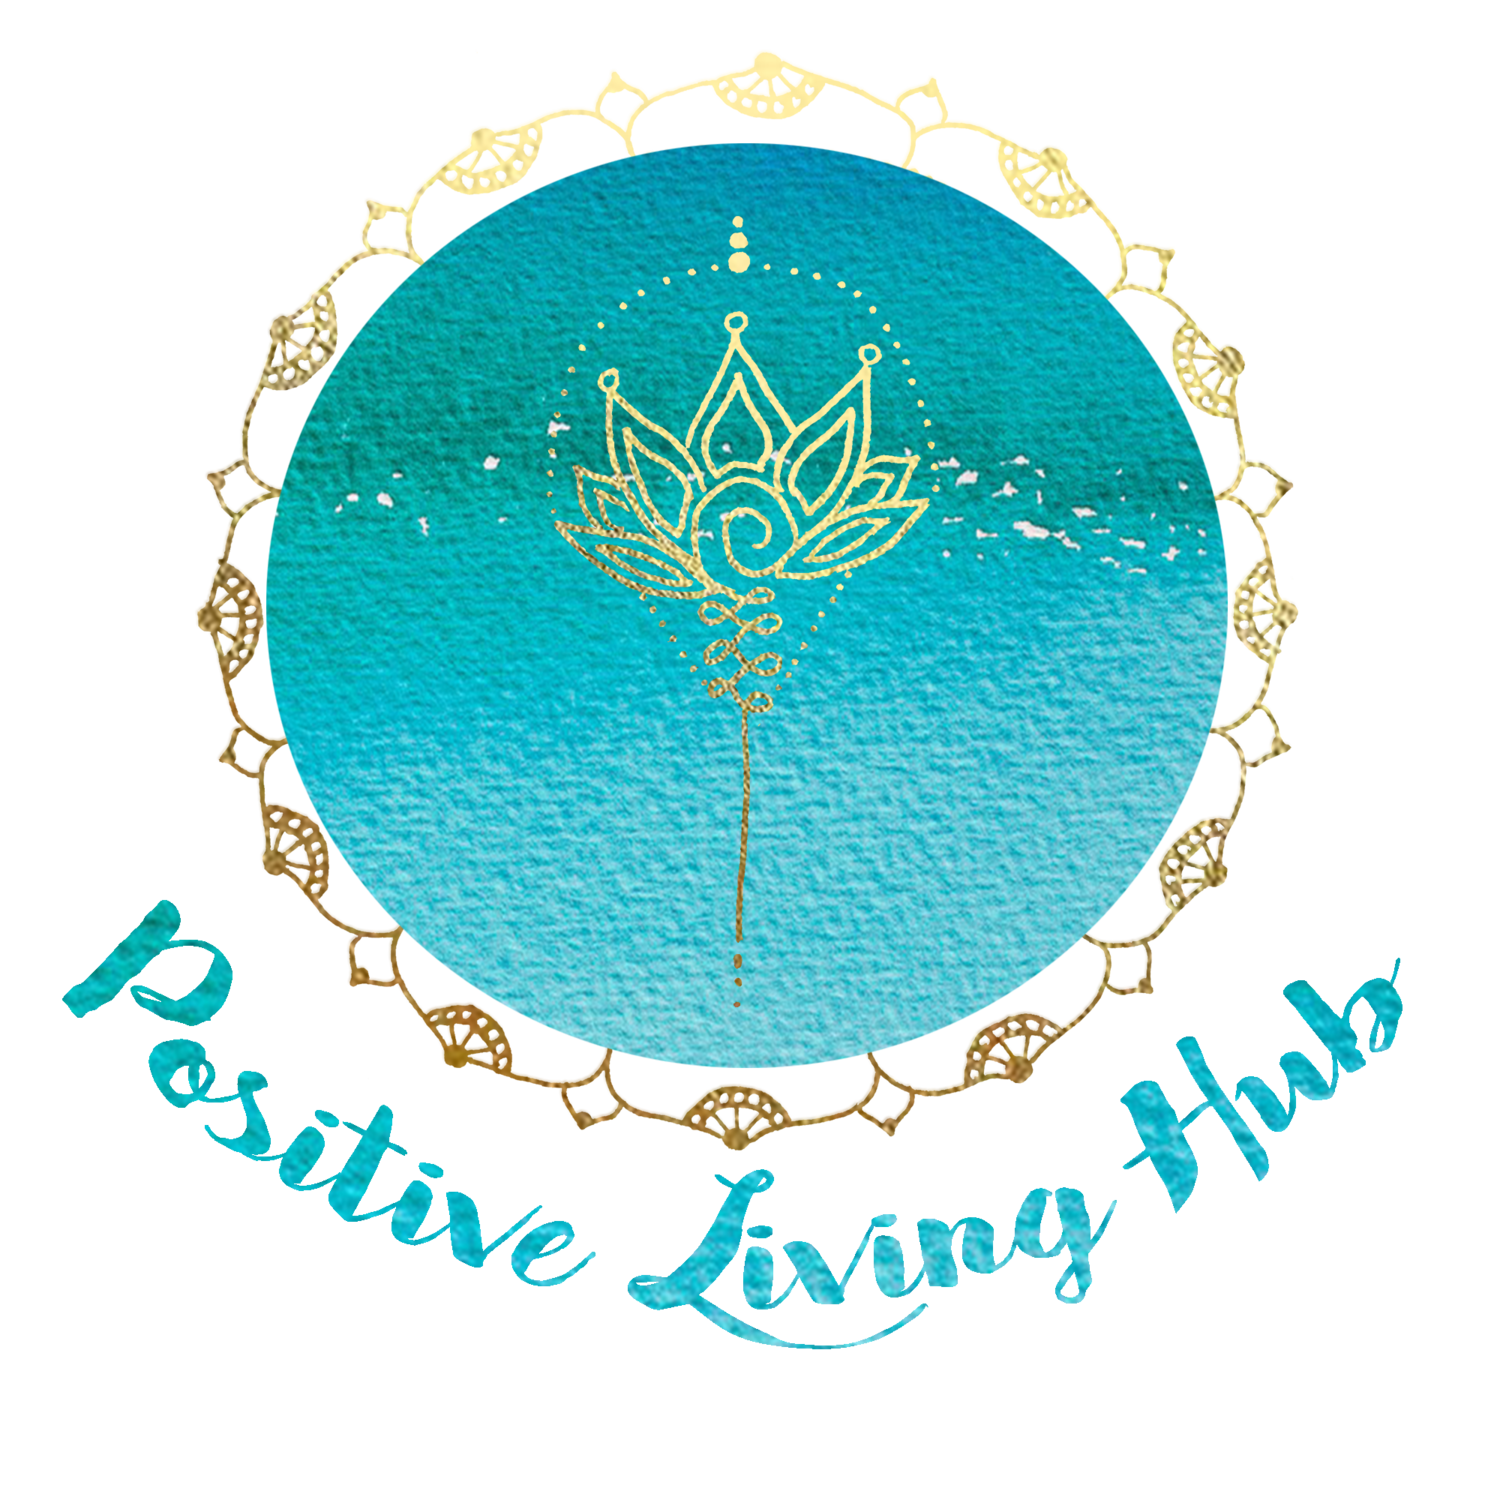 The Positive Living Hub